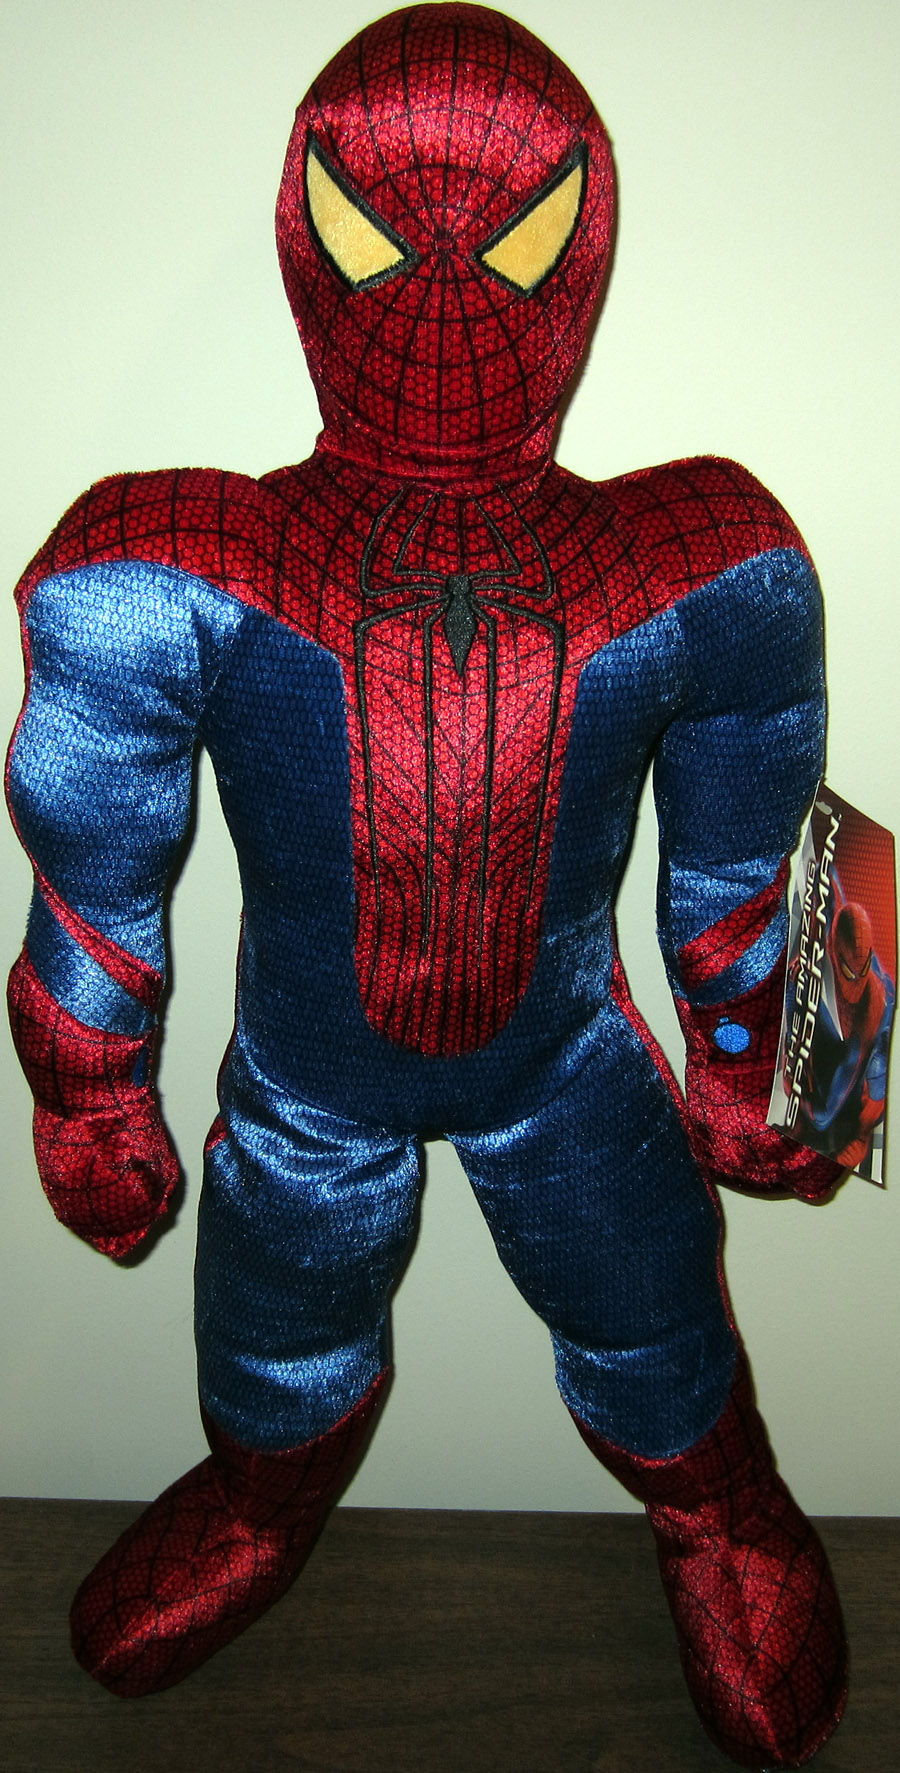 26inchtheamazingspidermanpillowtimepal.jpg